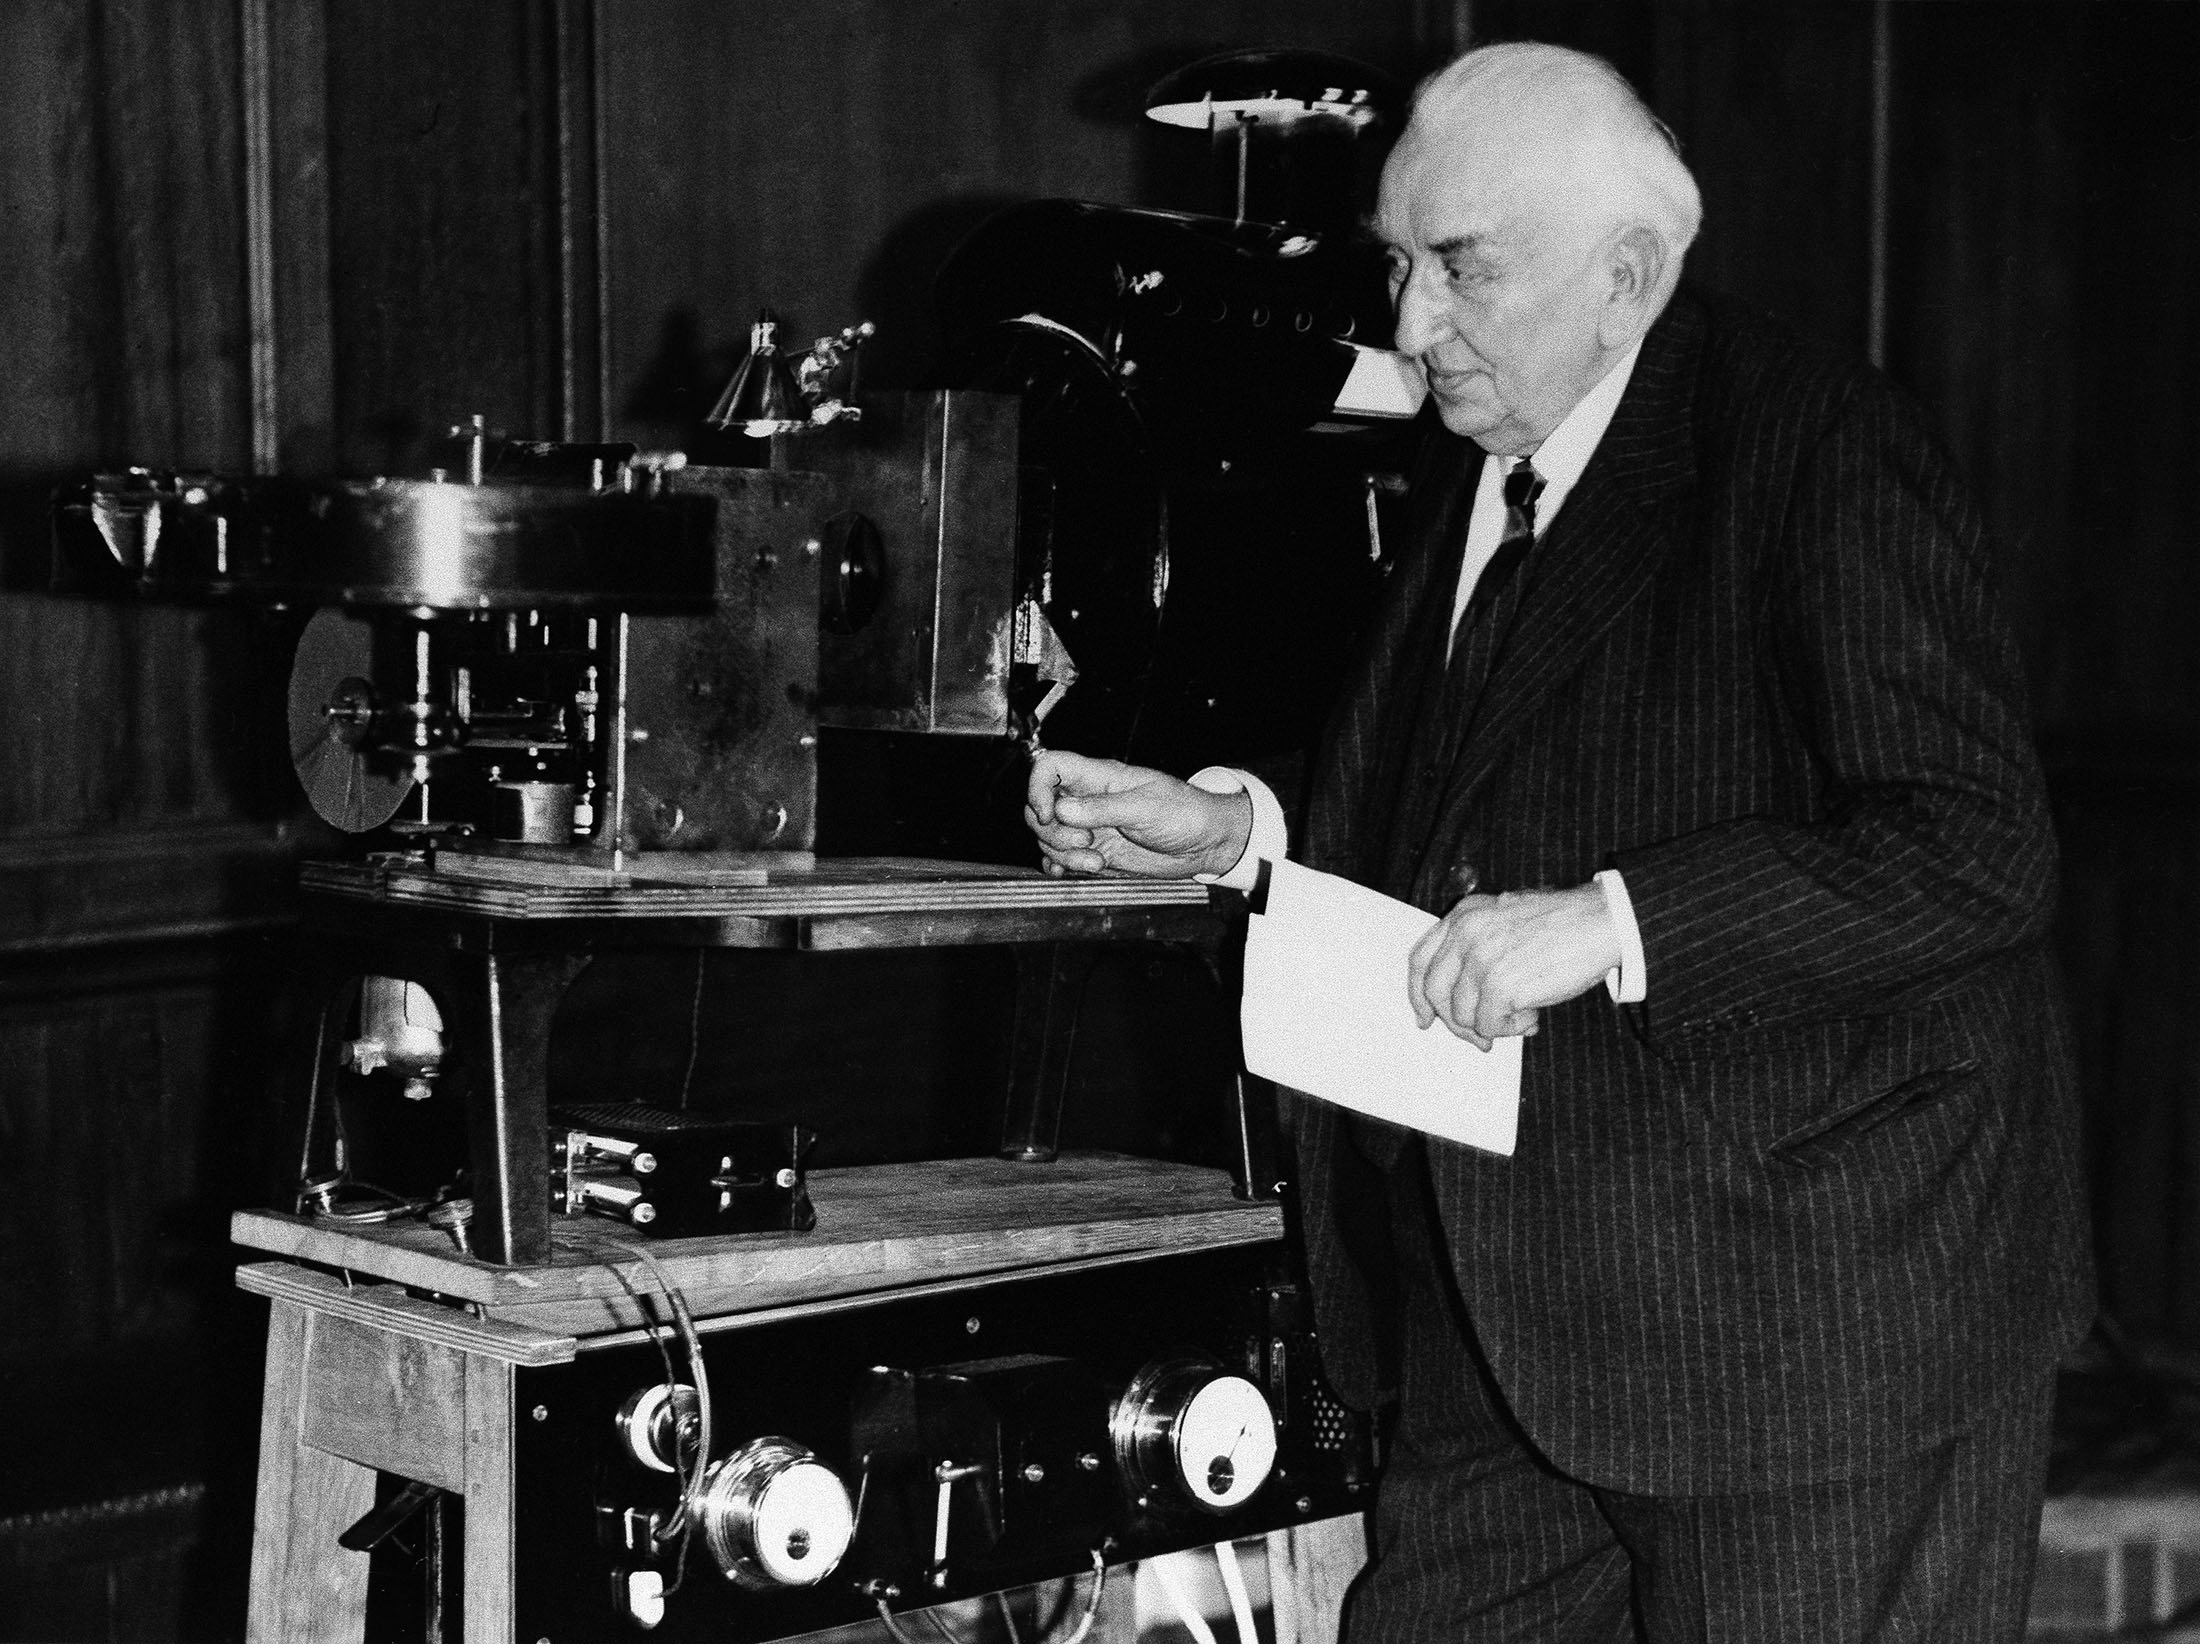 Louis Lumiere who made his first film in February 25, 1935 shows a new invention of his by which he projected a stereoscopic image on the screen, March 6, 1935. Location unknown. (AP Photo)